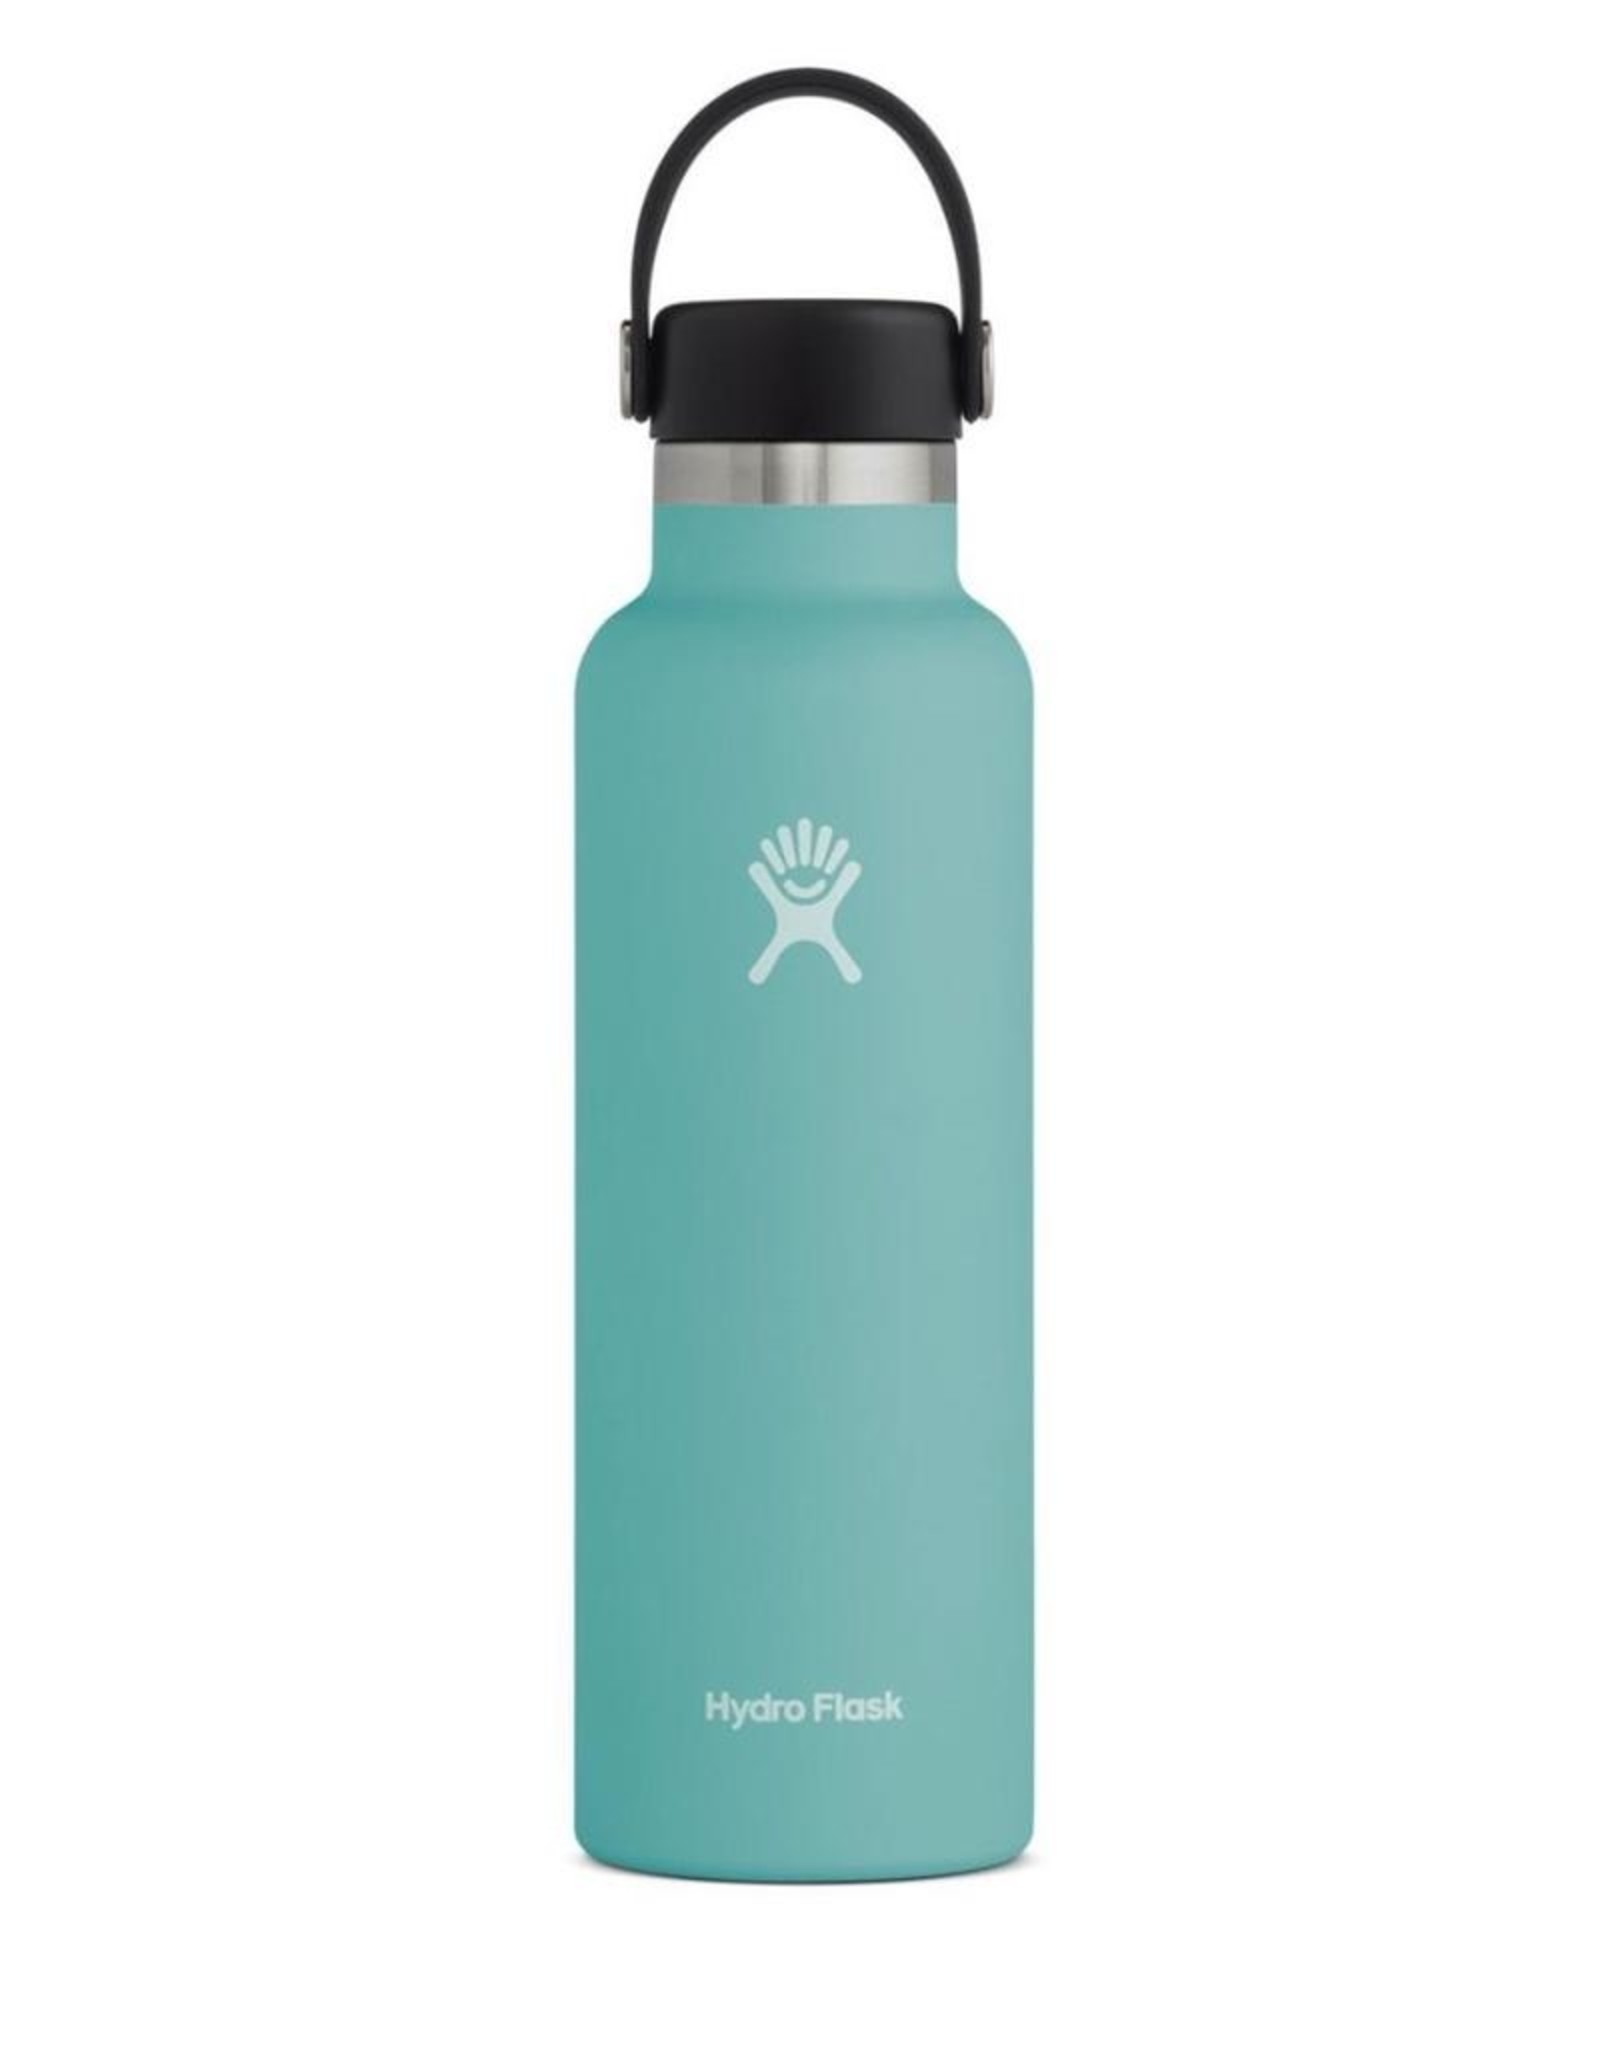 Hydro Flask 21 oz Standard Mouth in Alpine